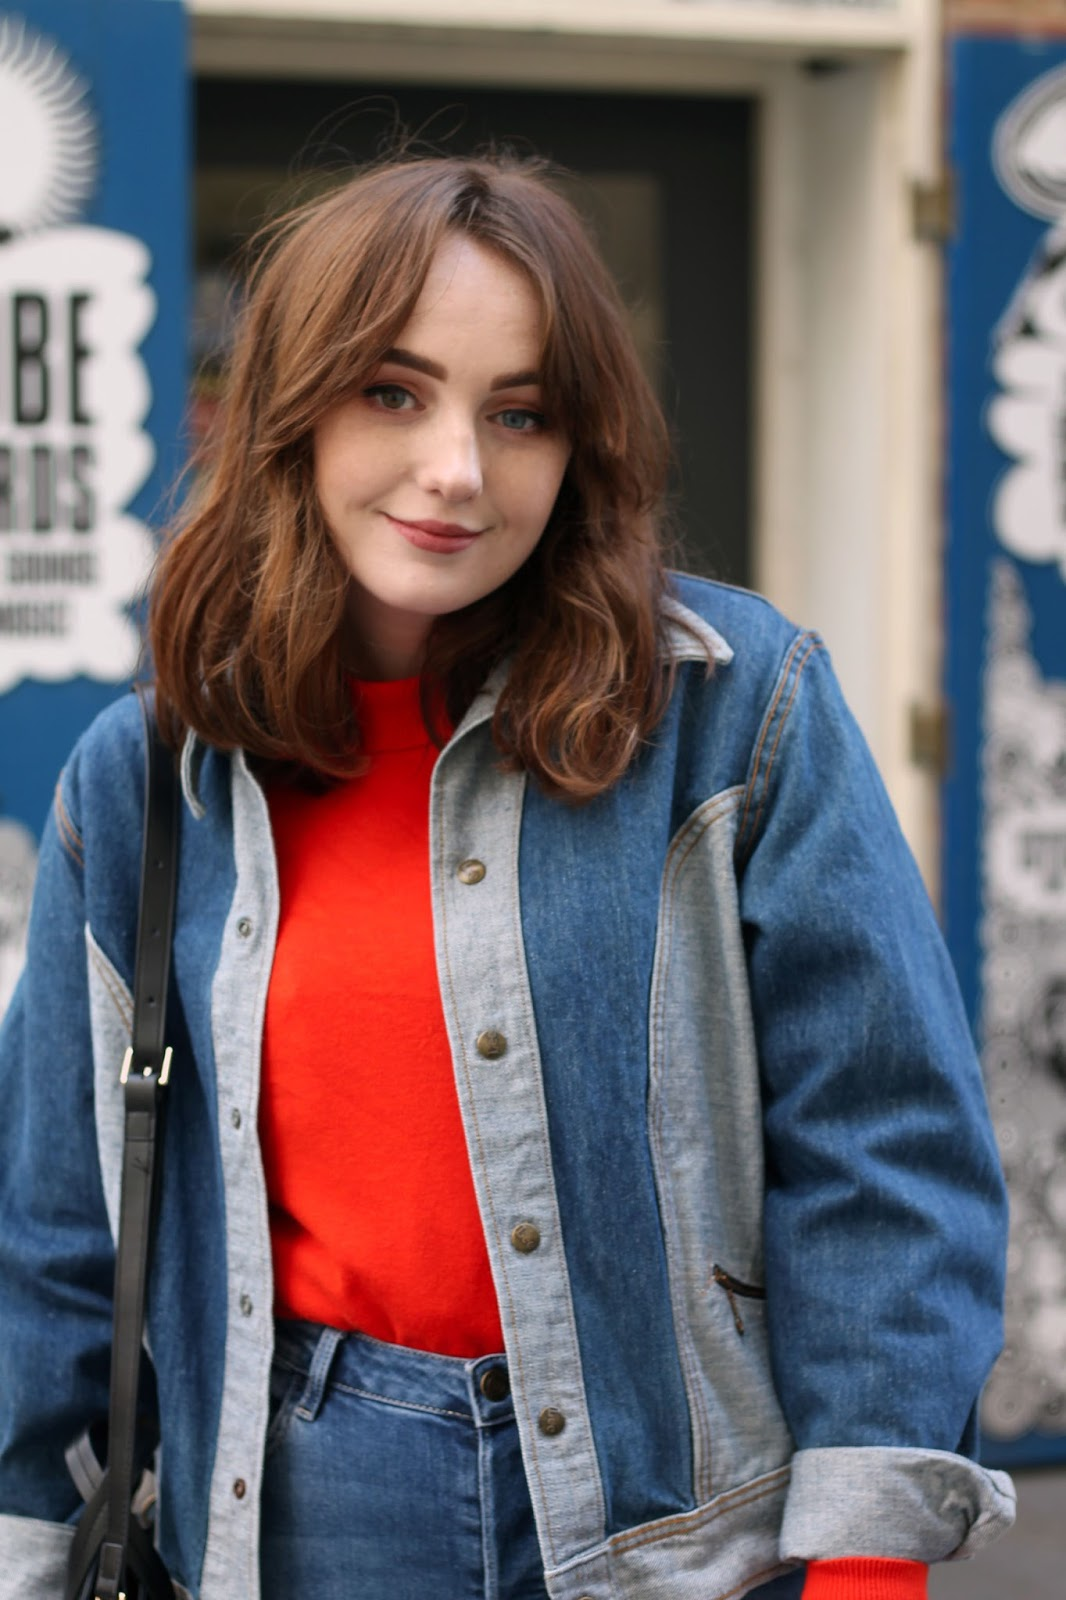 Liverpool based style blogger Allie Davies styles vintage Lee denim jacket in western design from Rokit Vintage London